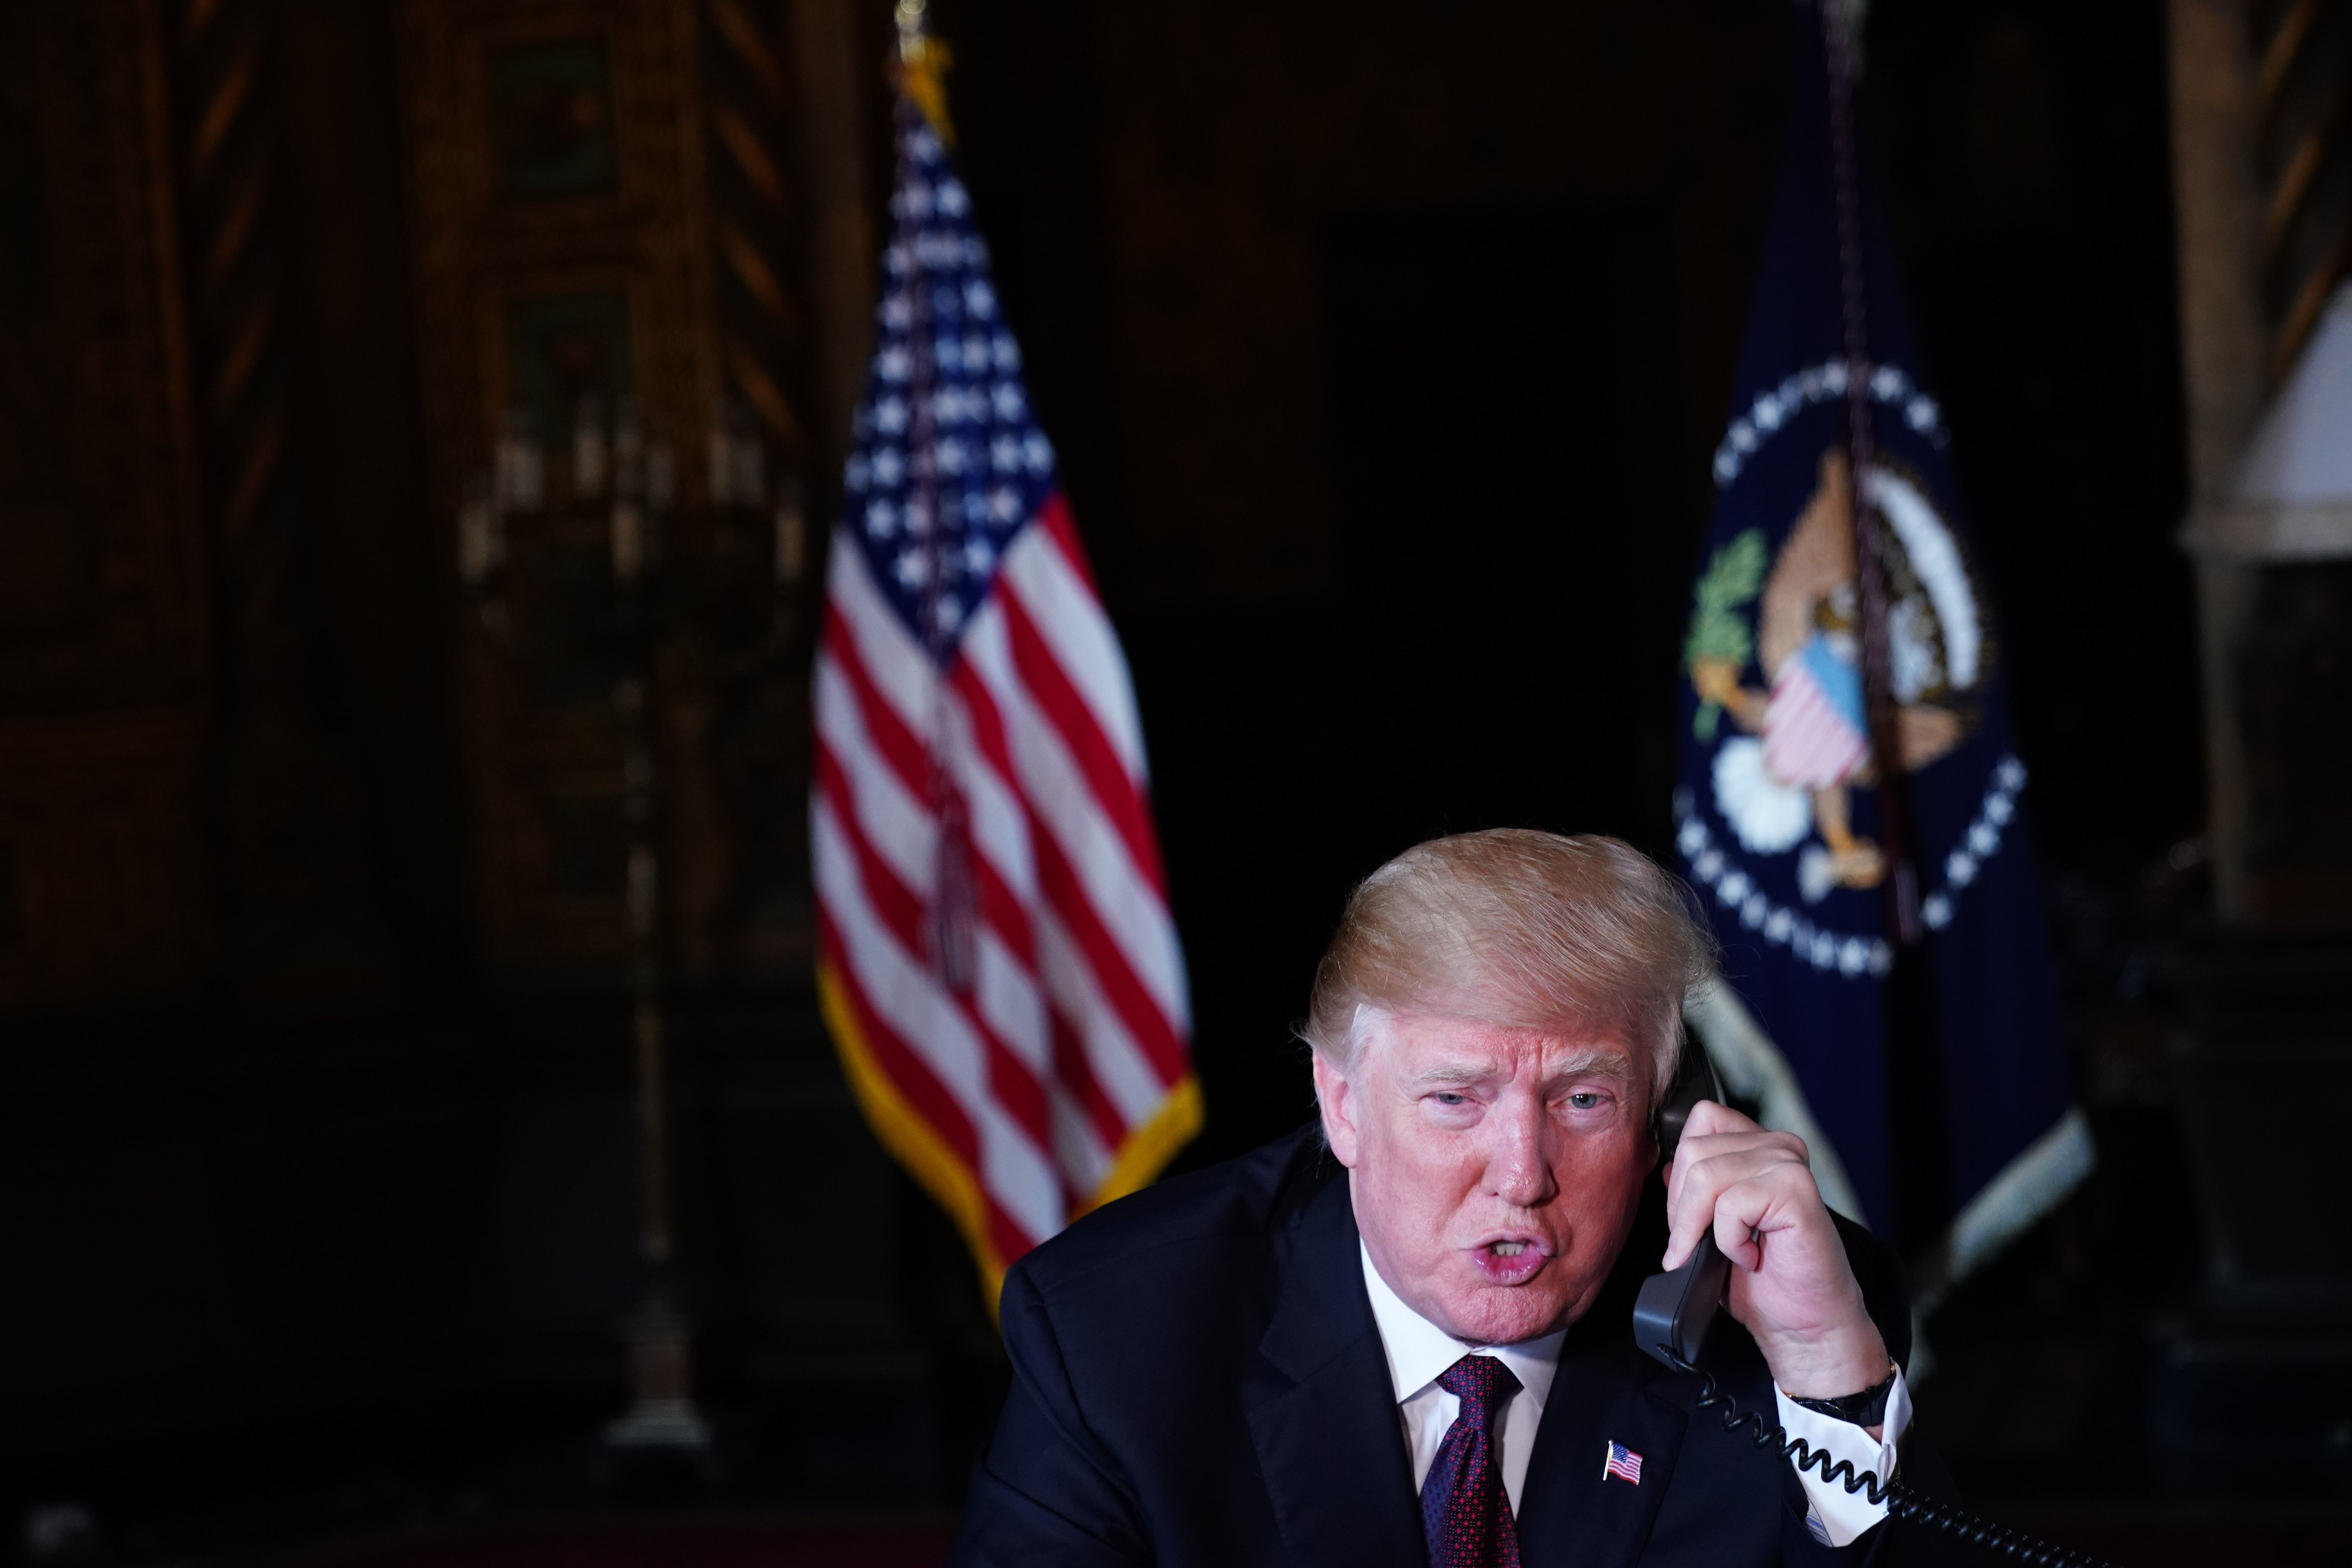 US President Donald Trump speaks to members of the military via teleconference from his Mar-a-Lago resort in Palm Beach, Florida, on Thanksgiving Day, November 22, 2018. (Photo by Mandel NGAN / AFP)        (Photo credit should read MANDEL NGAN/AFP/Getty Images)